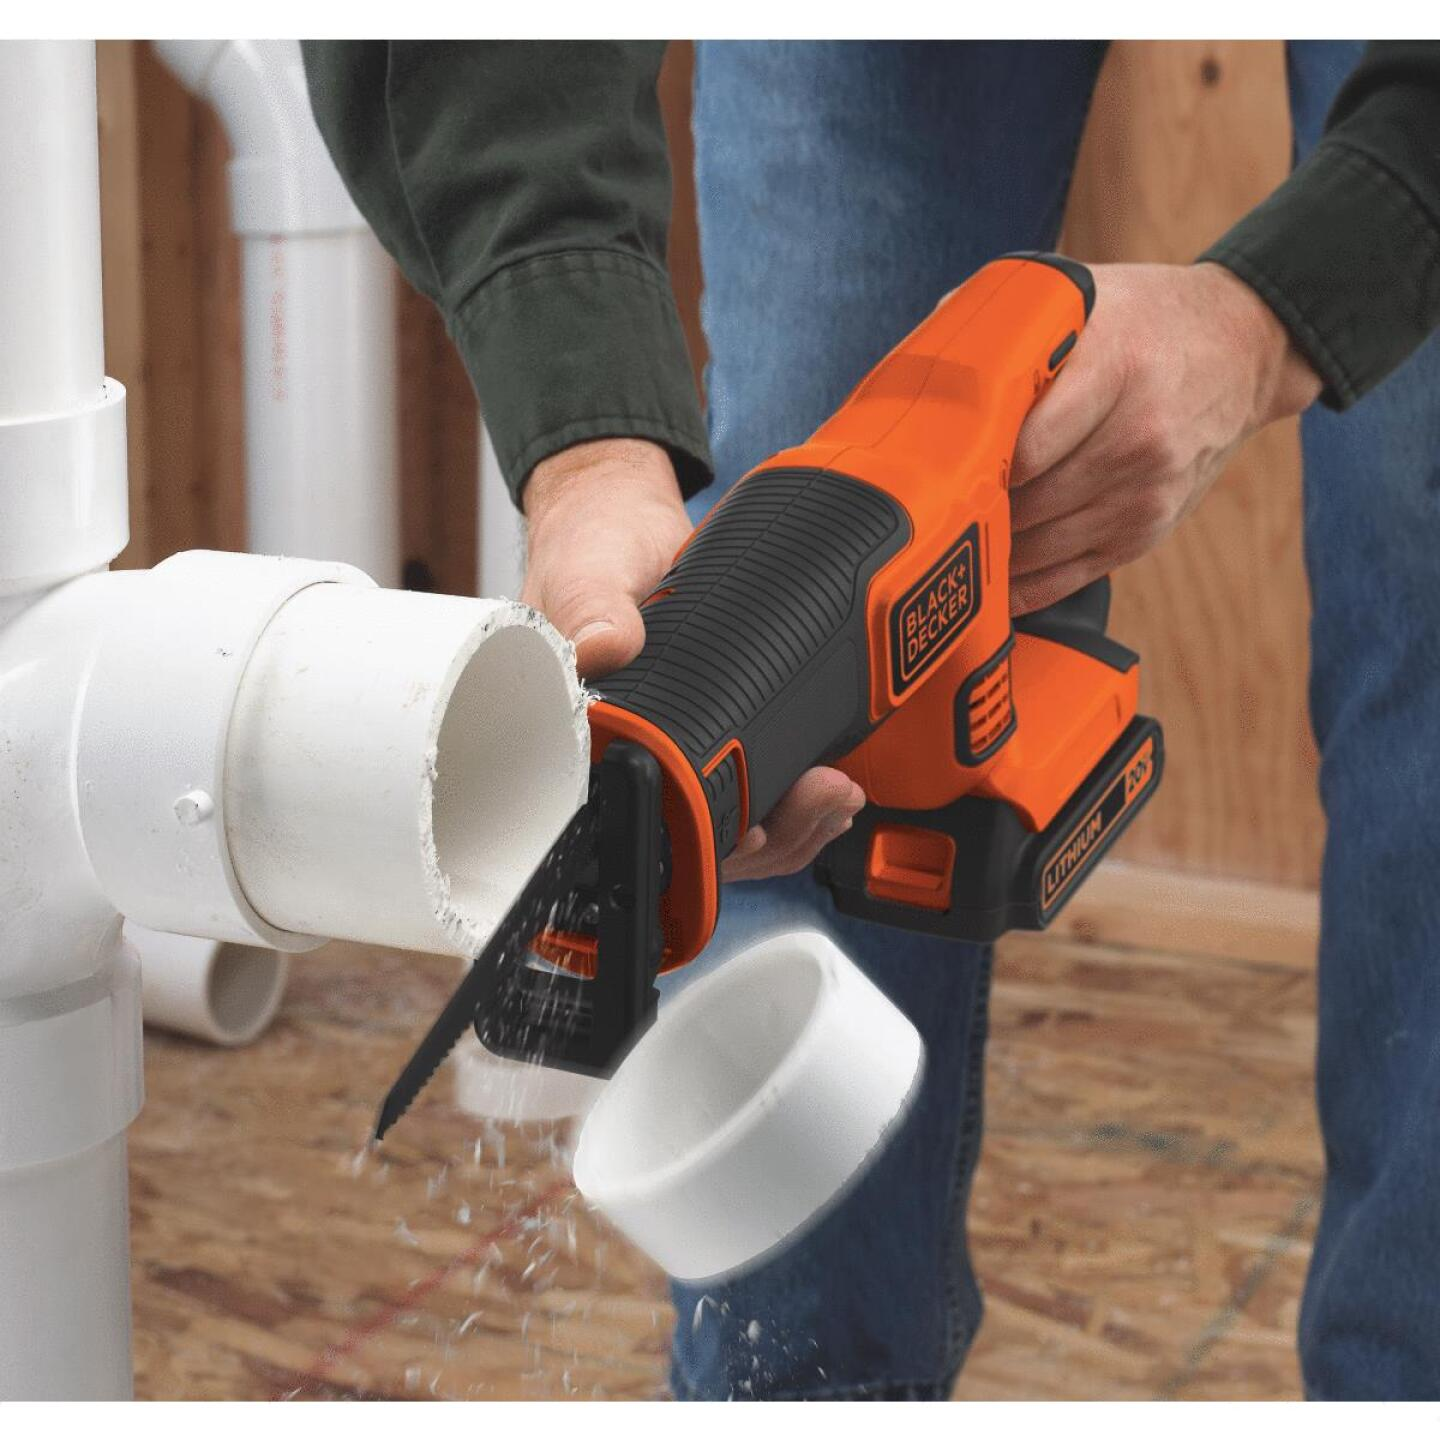 Black & Decker 20 Volt MAX Lithium-Ion Cordless Reciprocating Saw Kit Image 3